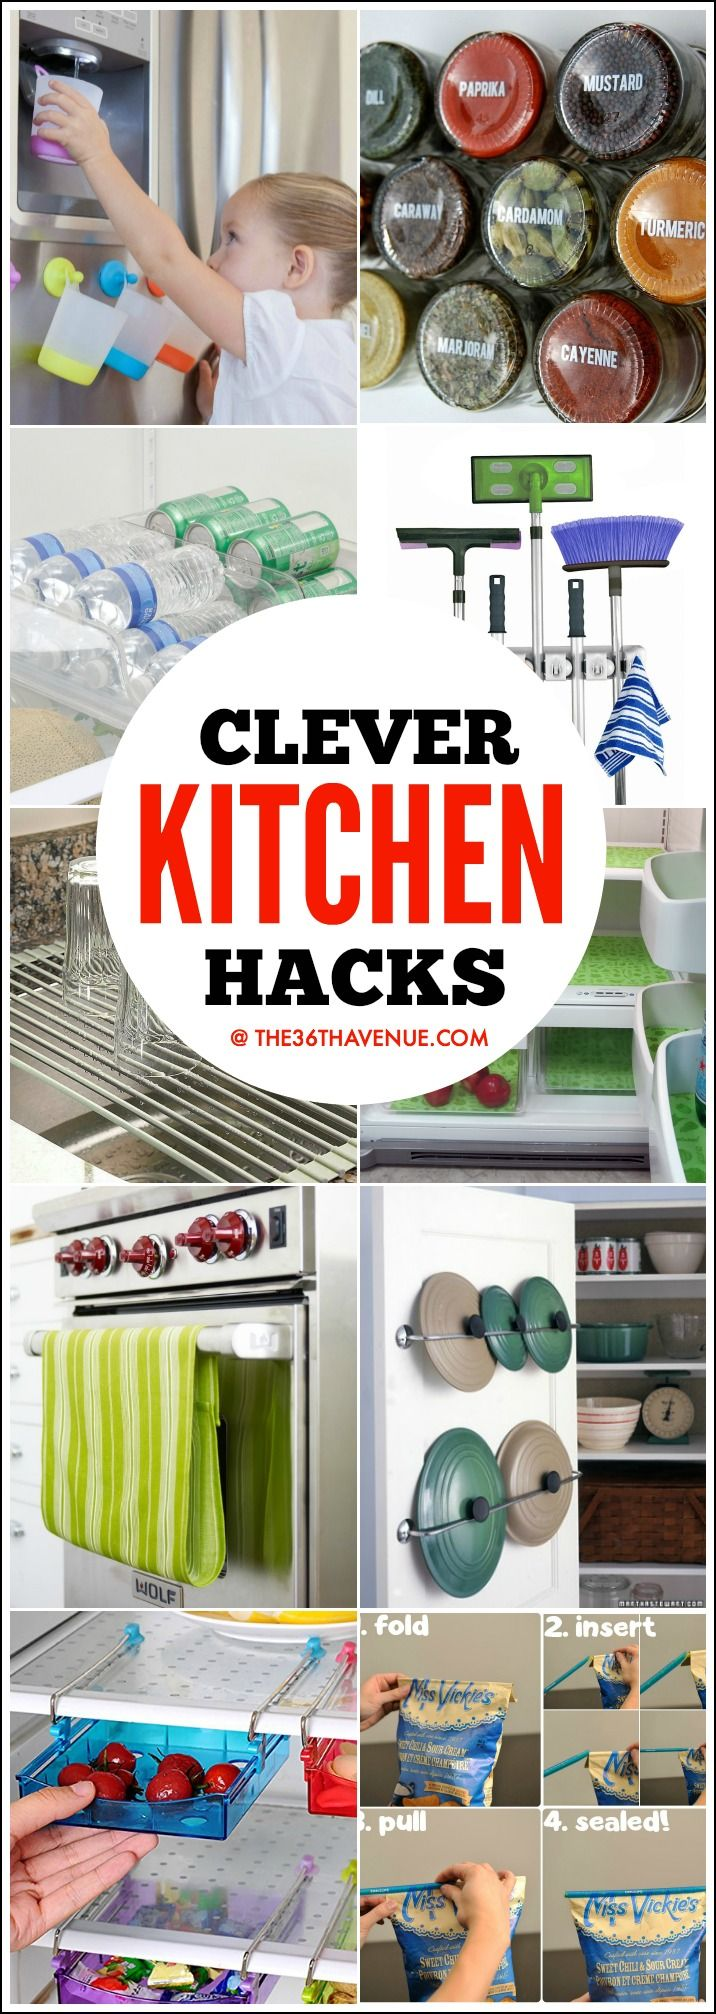 Clever Kitchen Hacks and Gadgets that will change your life! - These 45 Kitchen Organization Ideas are AMAZING! Must see them all. PIN IT NOW and use them later!: